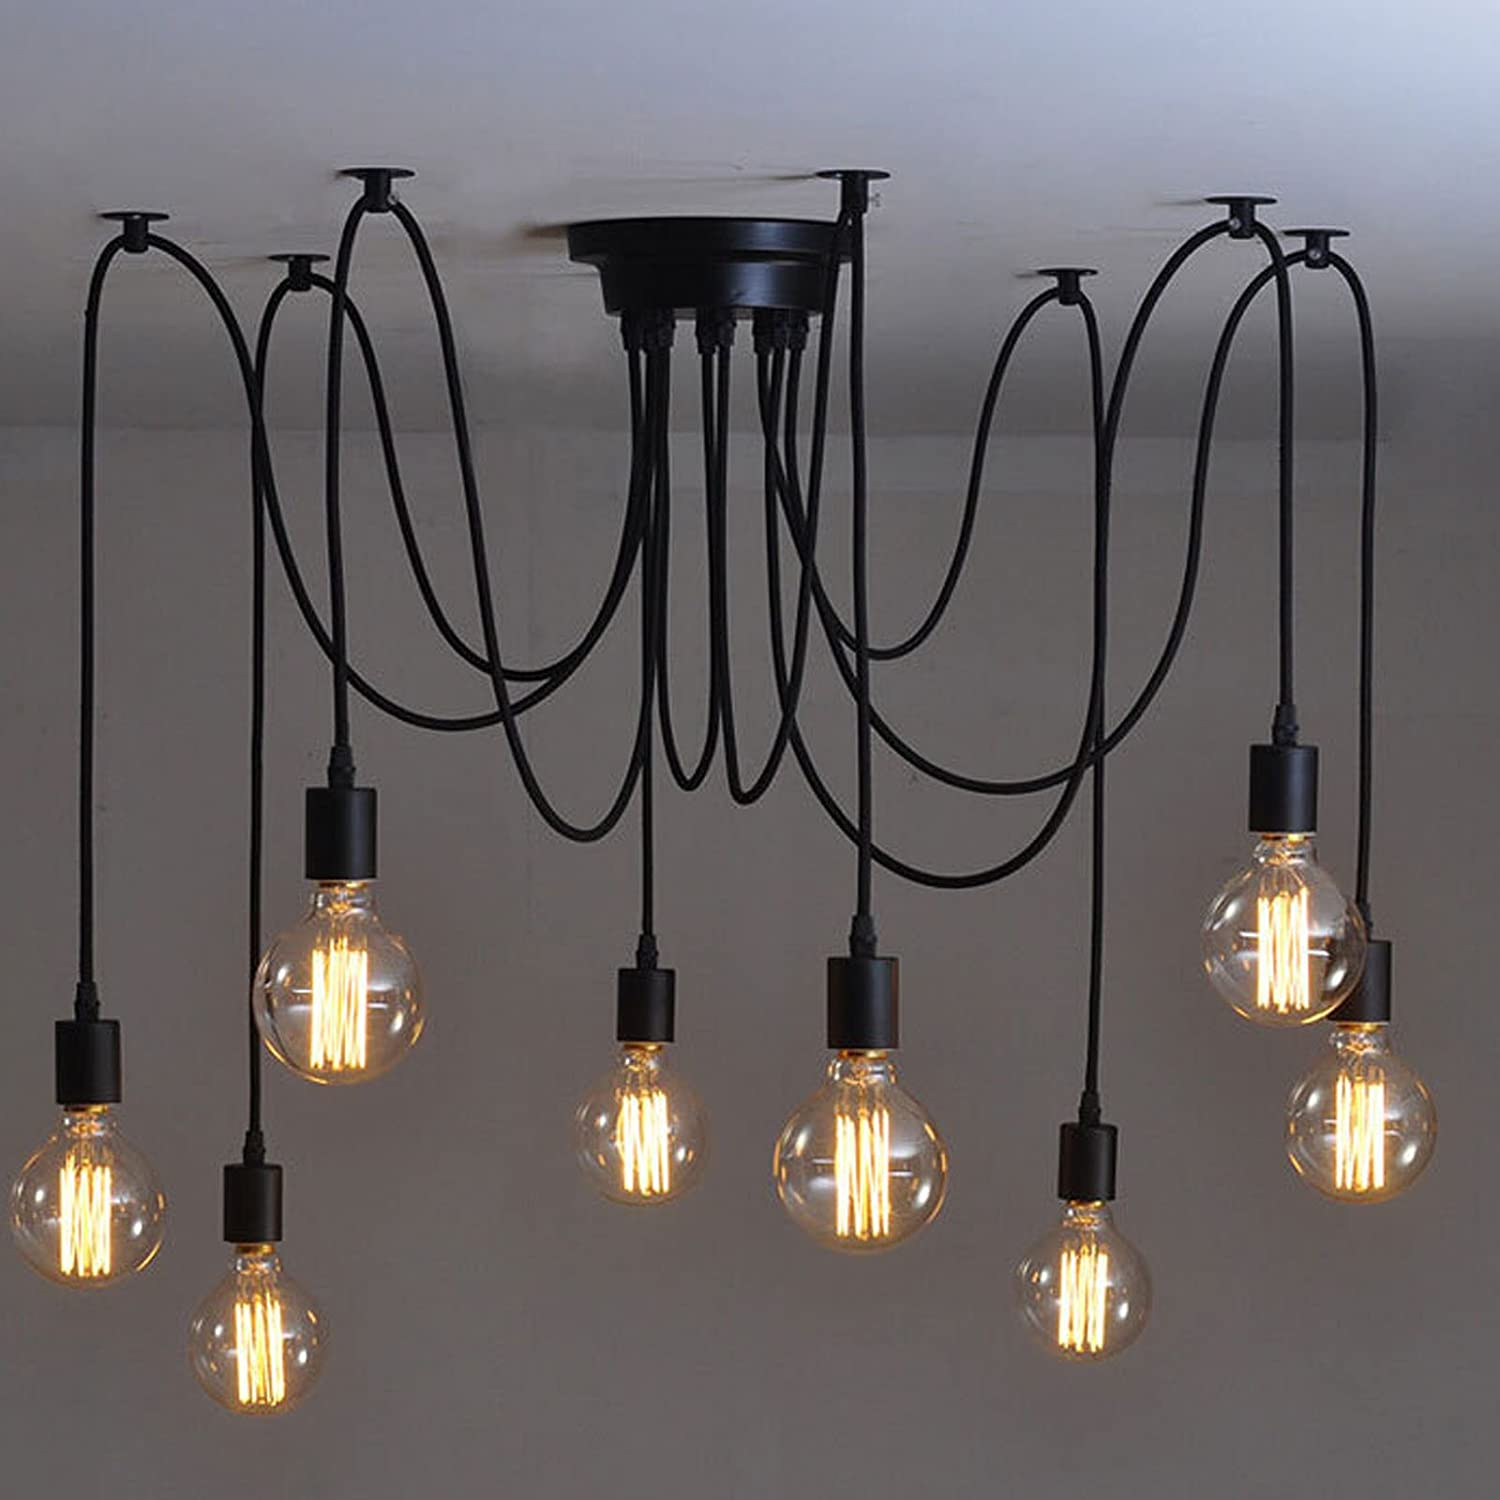 sconces vintage light lamp pendant pin antique for chandeliers wall edison awesome cage lighting incandescent bulbs glass squirrel bulb filament products